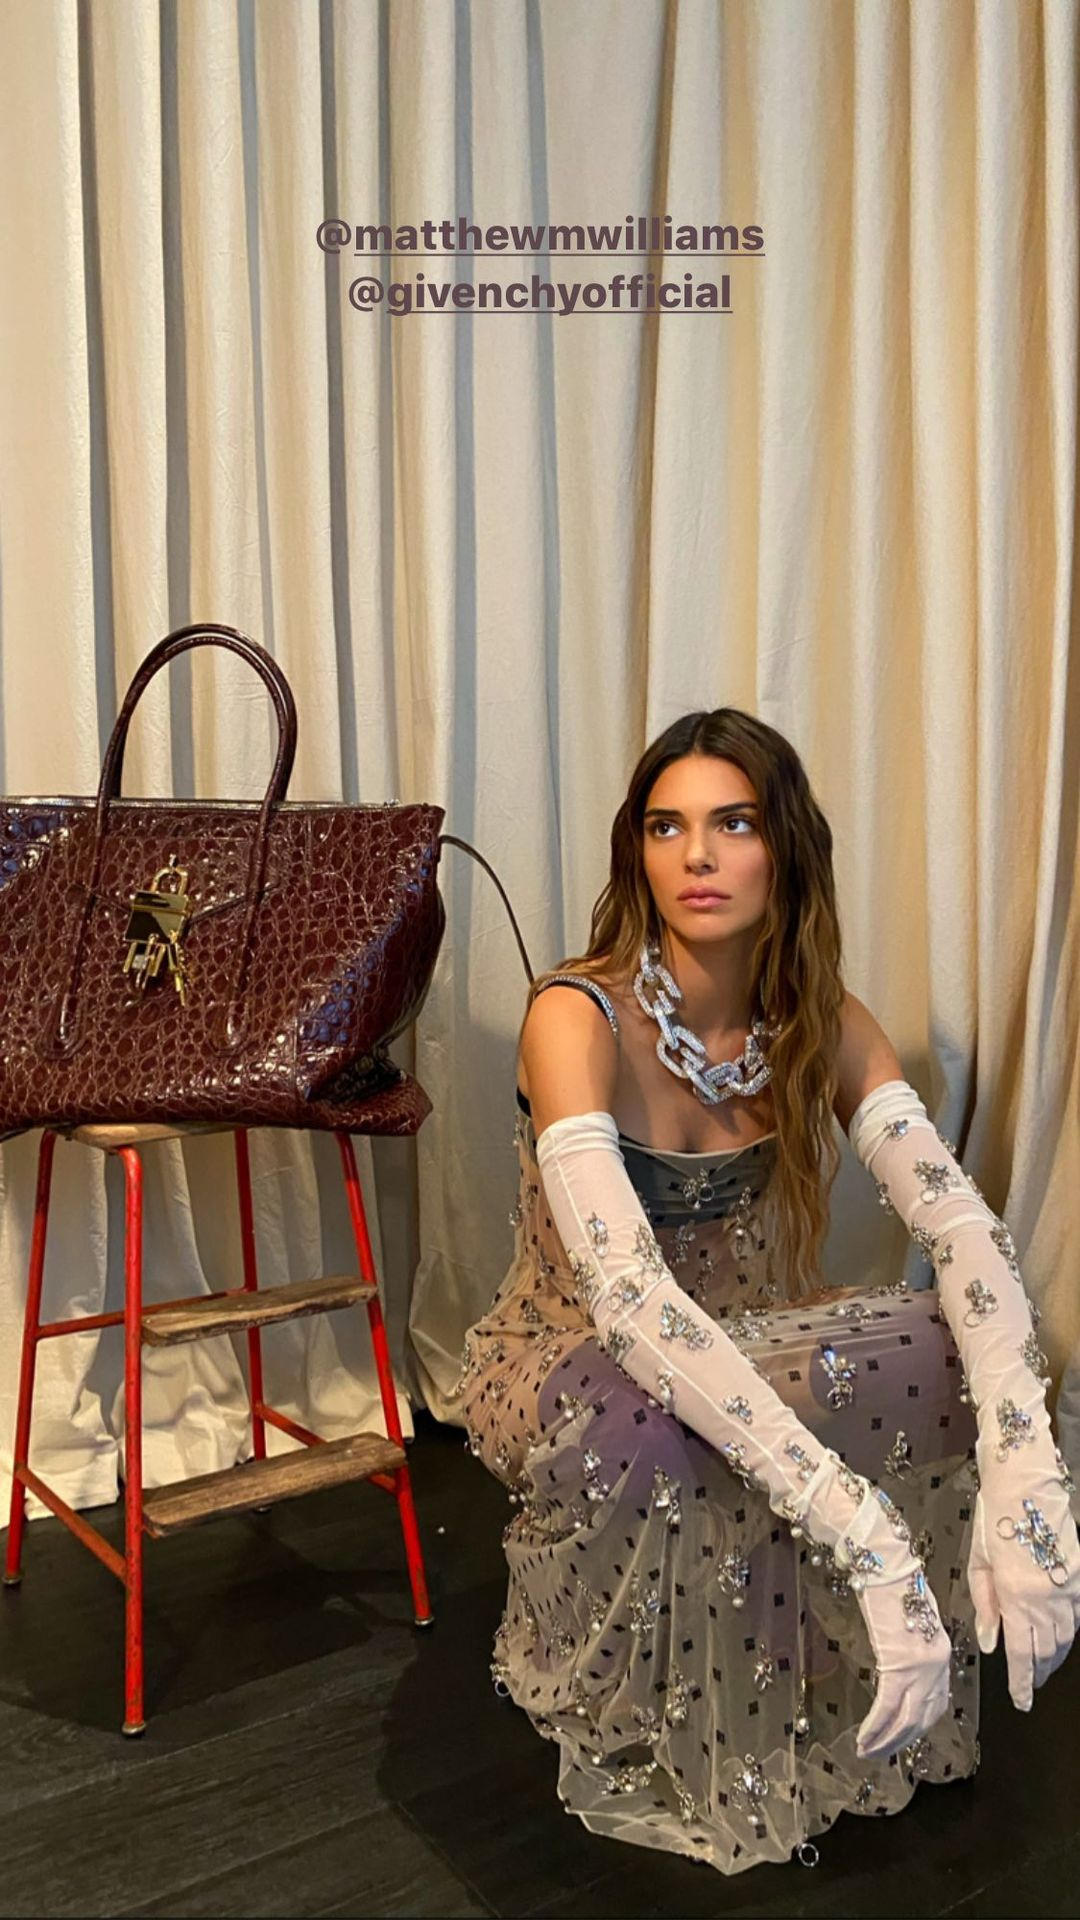 Kendall Jenner, ivory maxi dress, see-through, maroon purse, tease at, sexy, thin shoulder strap, low neck, flowing, sequin detailing. Kendall Jenner donning a sheer ivory dress with a sequin detailing material and thin shoulder strap